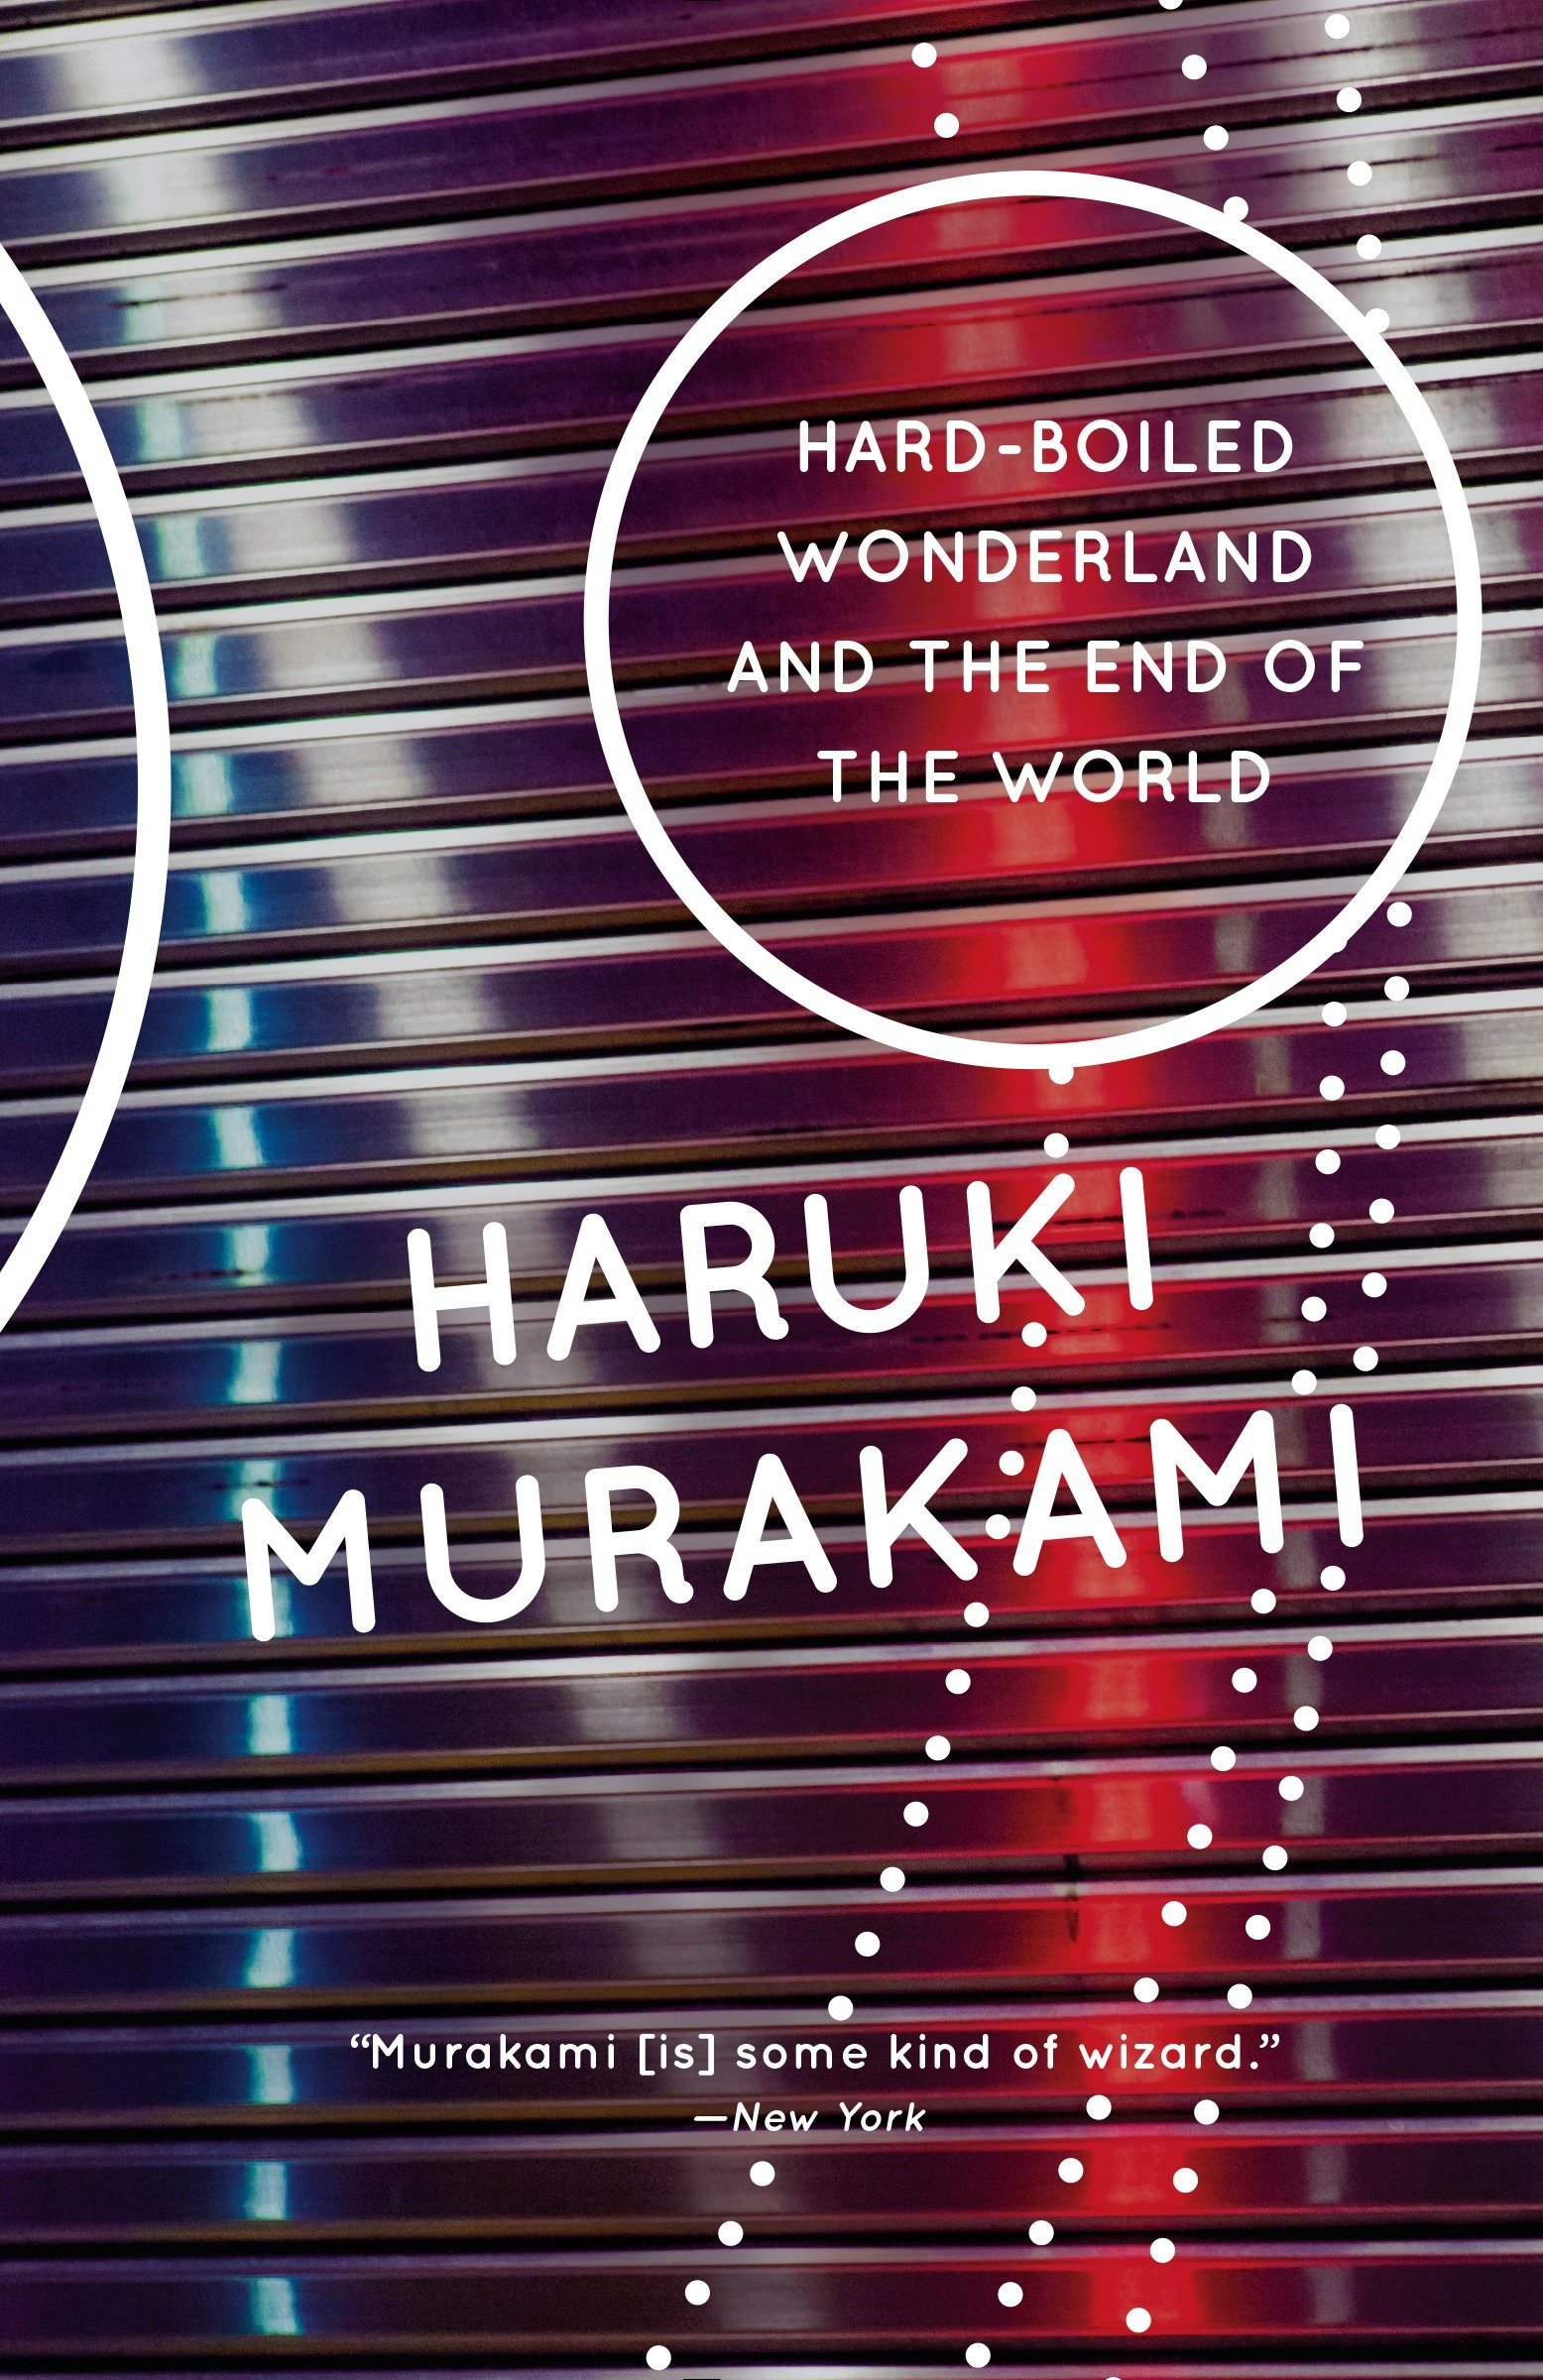 Murakami - Hardboiled Wonderland - Science Fiction Classics